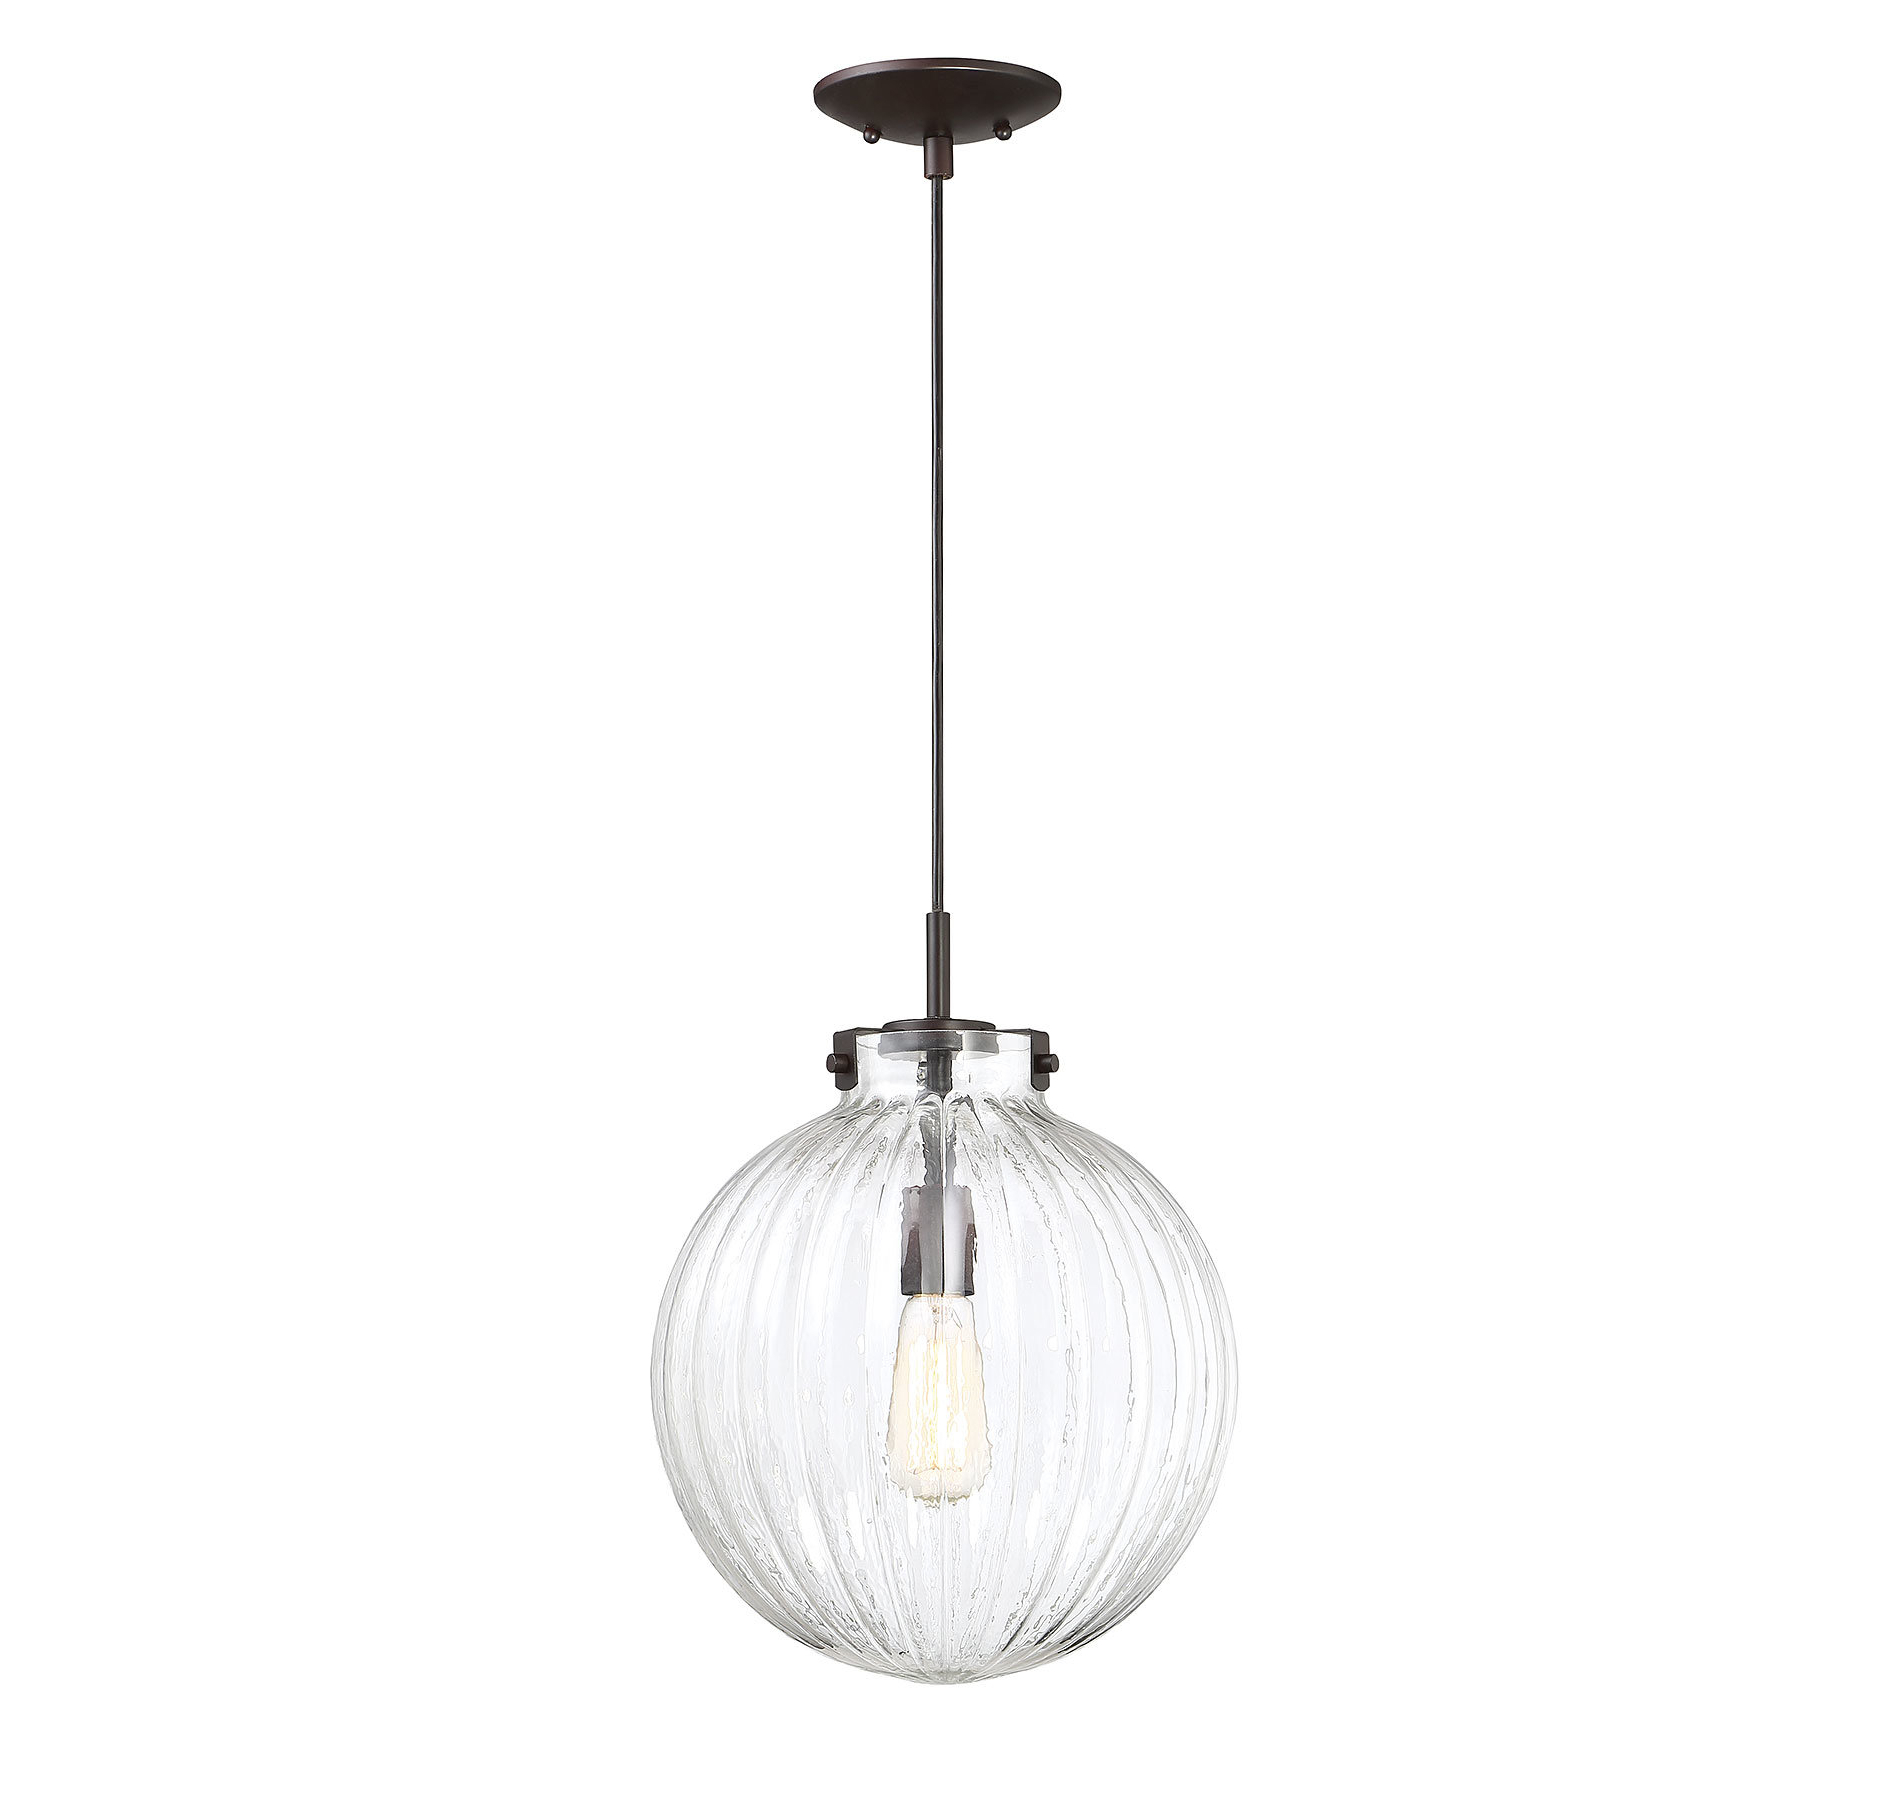 Nevels 1 Light Single Globe Pendant In 2020 Bundy 1 Light Single Globe Pendants (View 15 of 20)